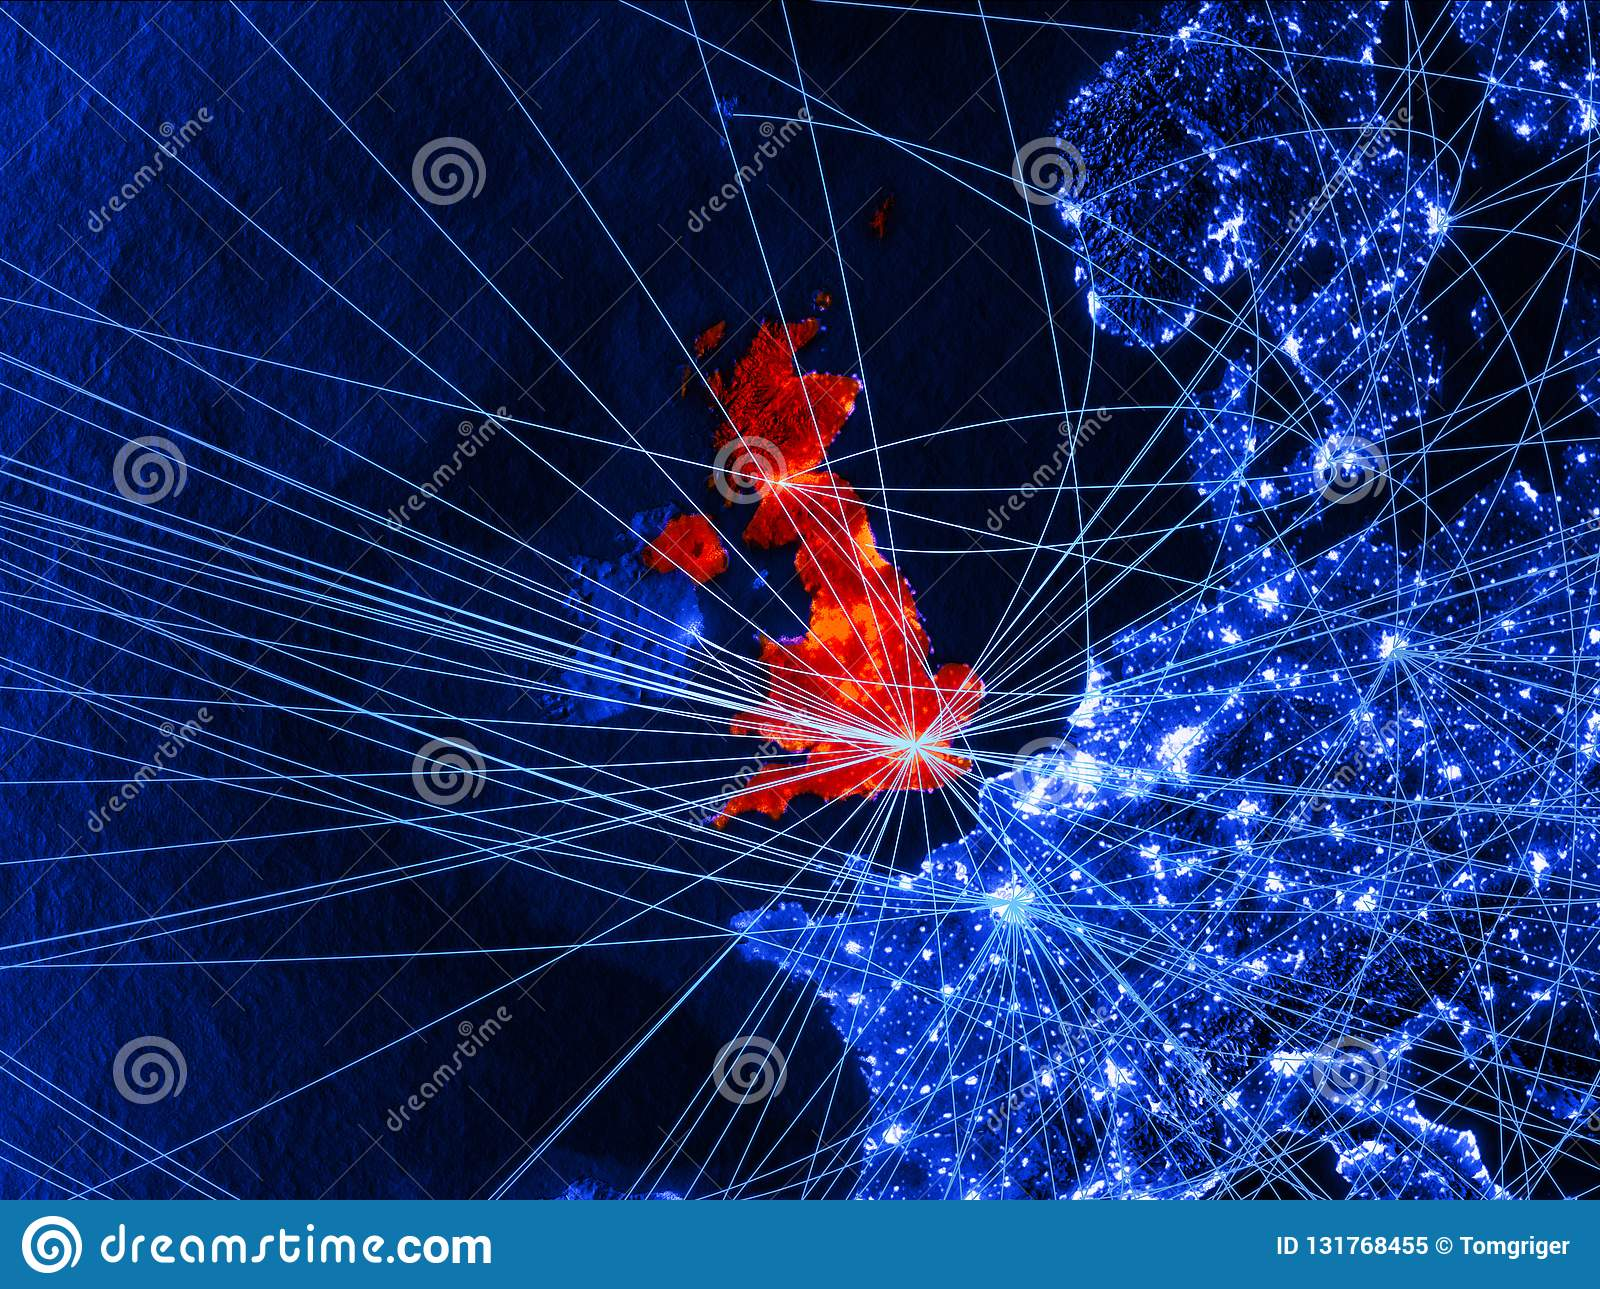 United Kingdom On Blue Digital Map With Networks. Concept Of ... on military time map, sketch map, brand experience map, ntsc map, quantum map, 1080p map, ds2 map, terrain map, donakonda map, computerized map, guerrilla map, data map, iptv map, optical map, electronic map, city map, open here map, hologram map, surreal map, crowdsourcing map,